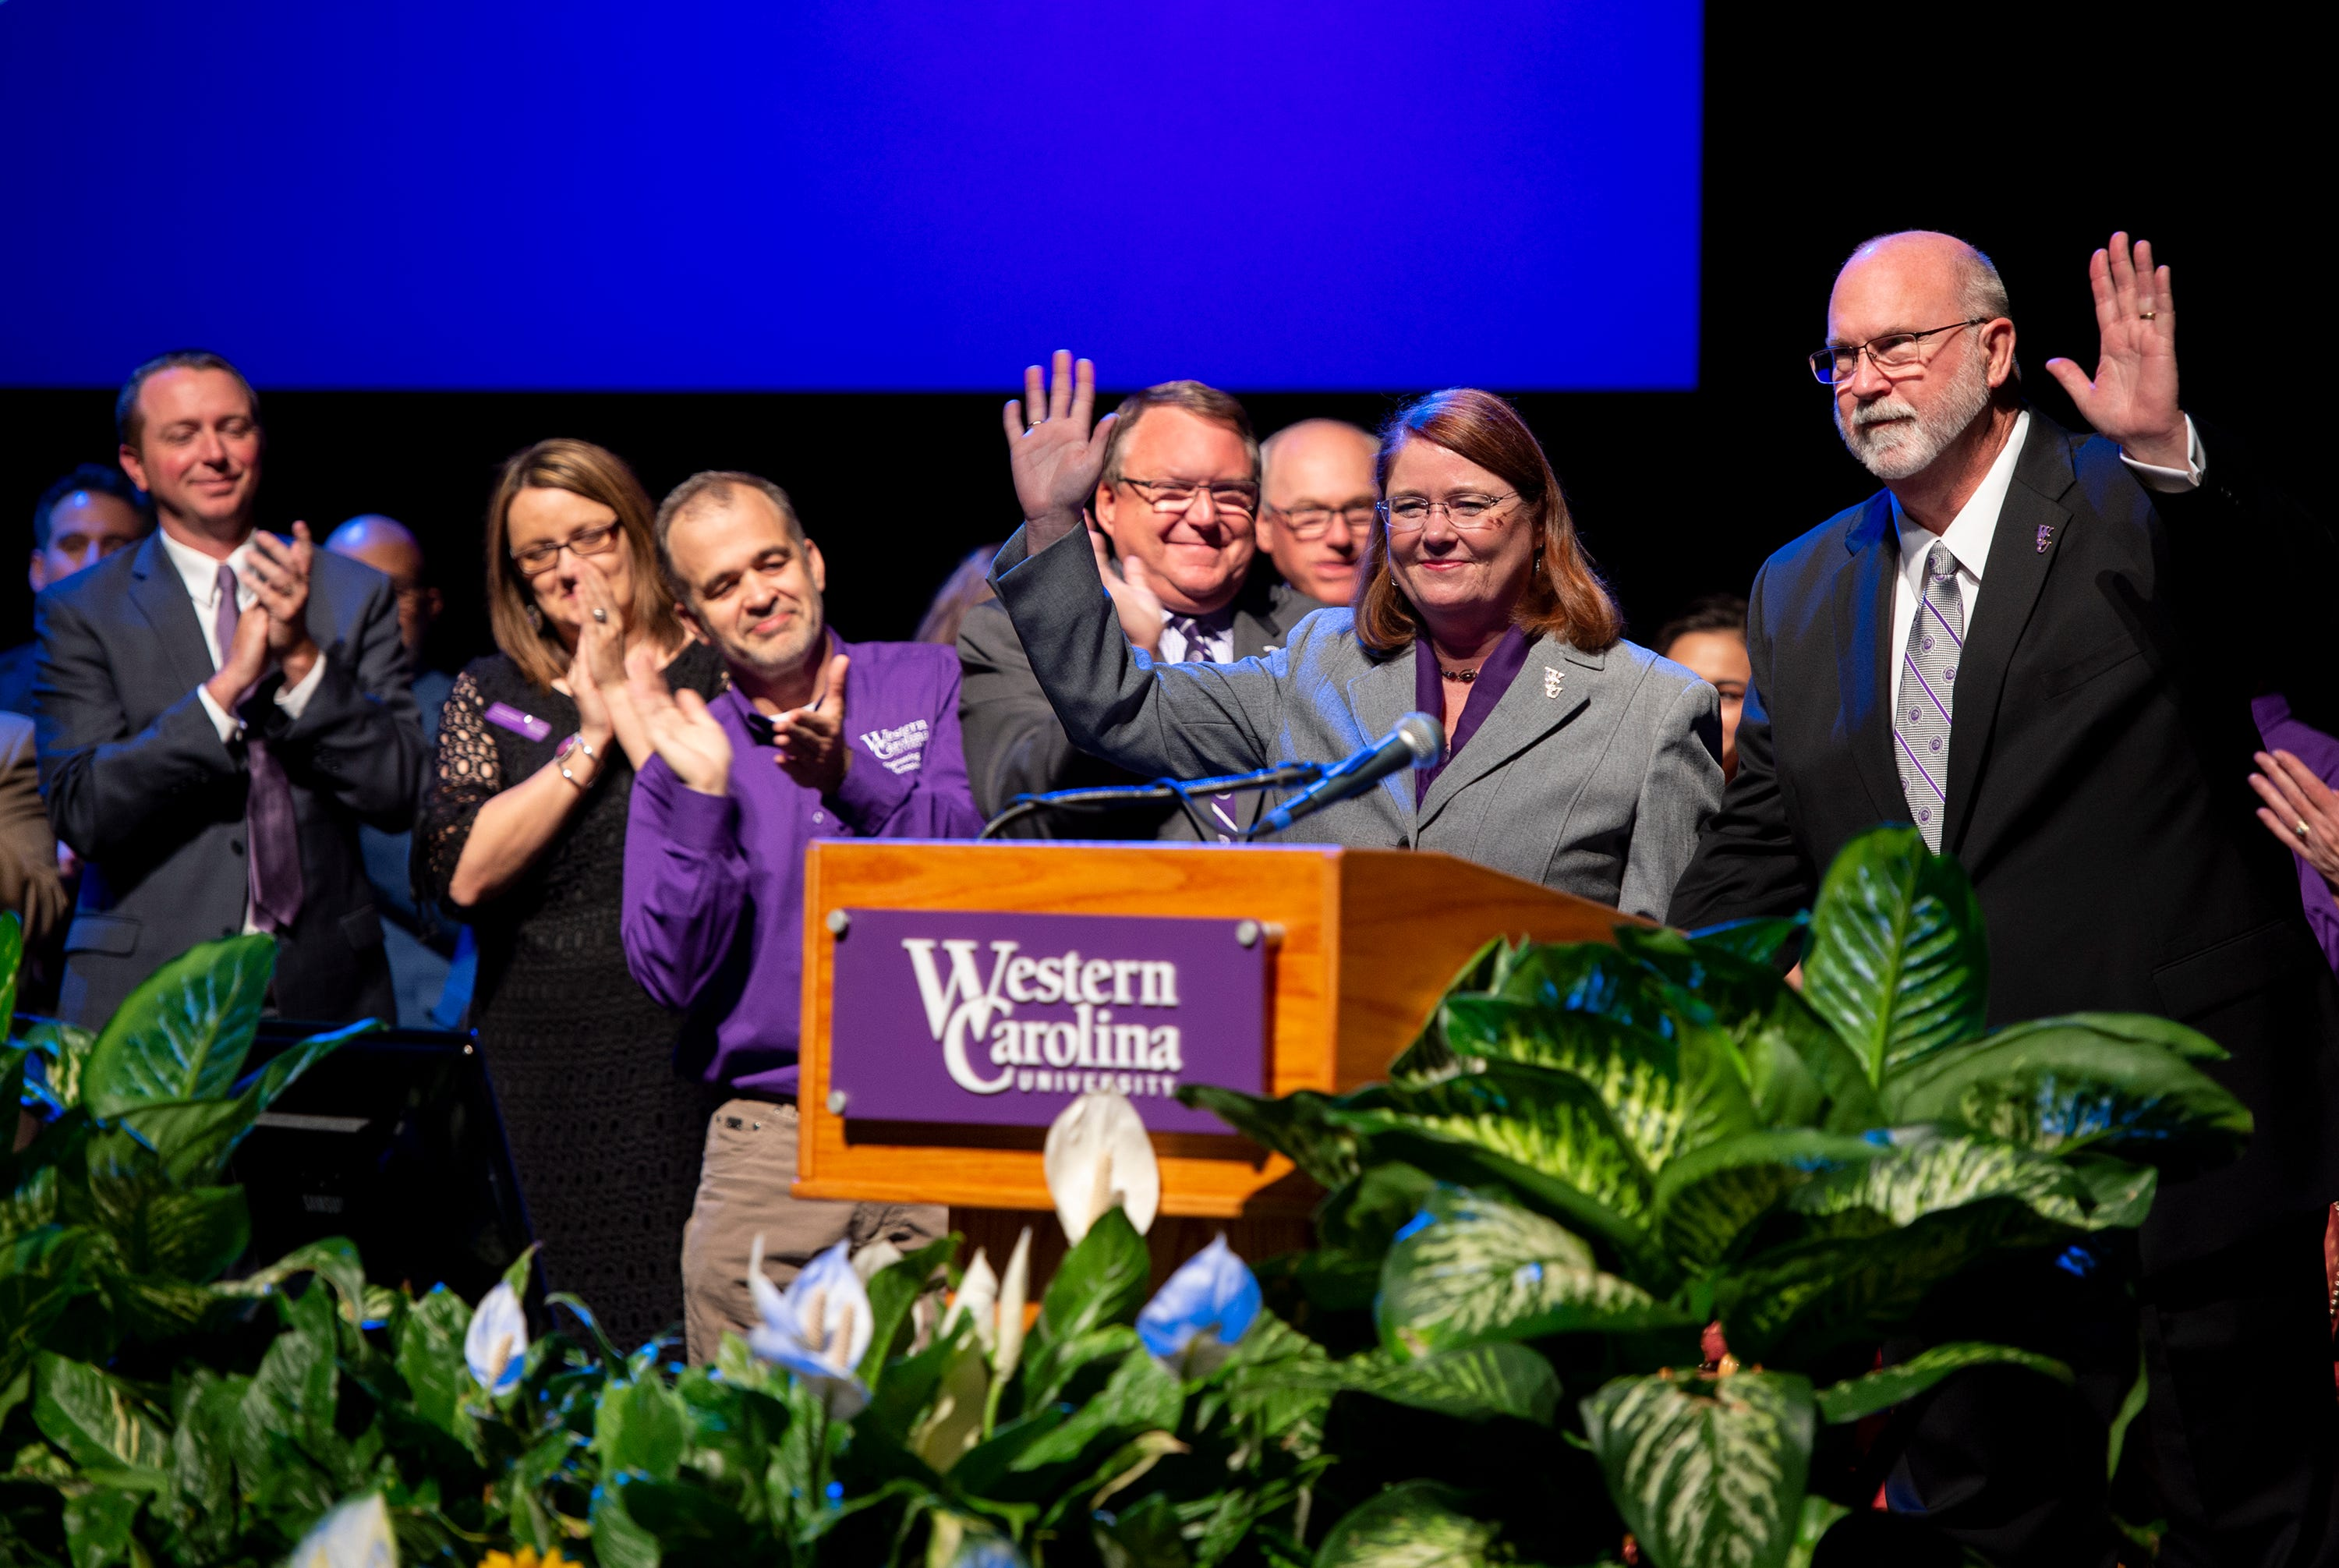 WCU welcomes new chancellor Kelli Brown to campus